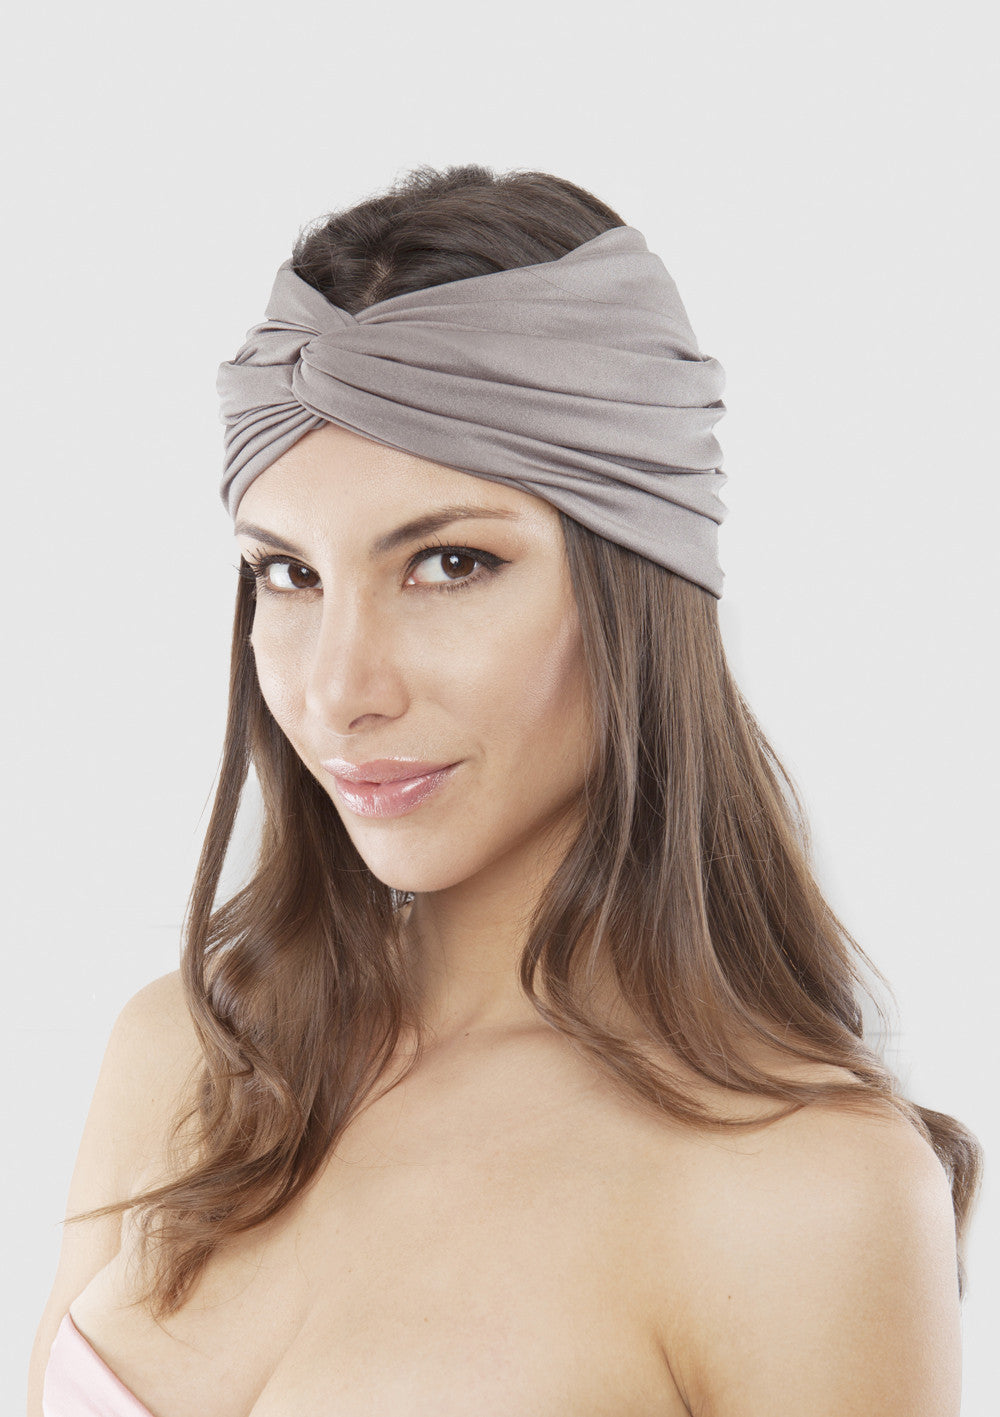 Turn turban Grey